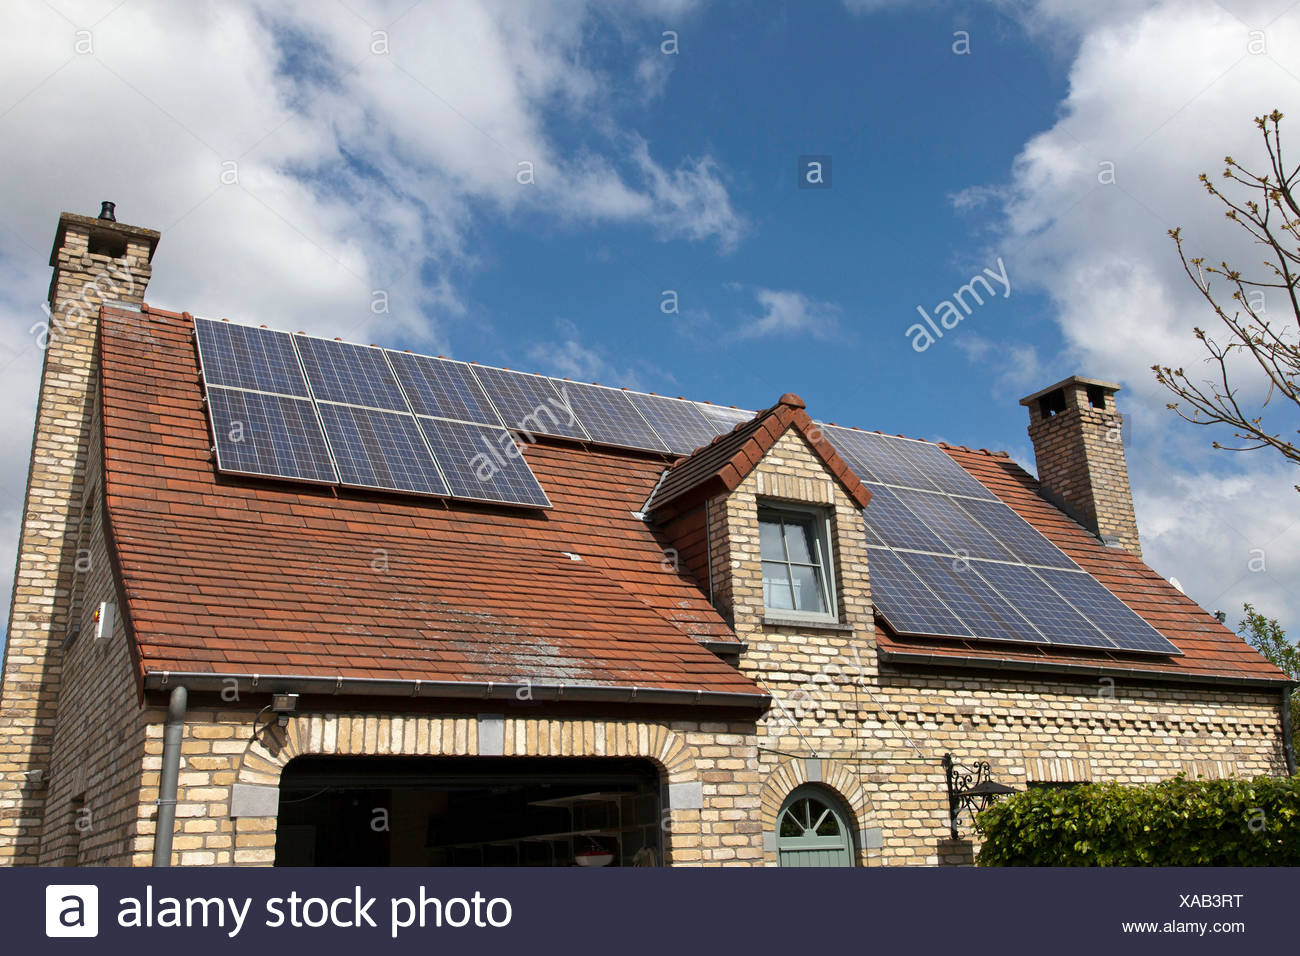 Detached house with solar panels on roof Stock Photo